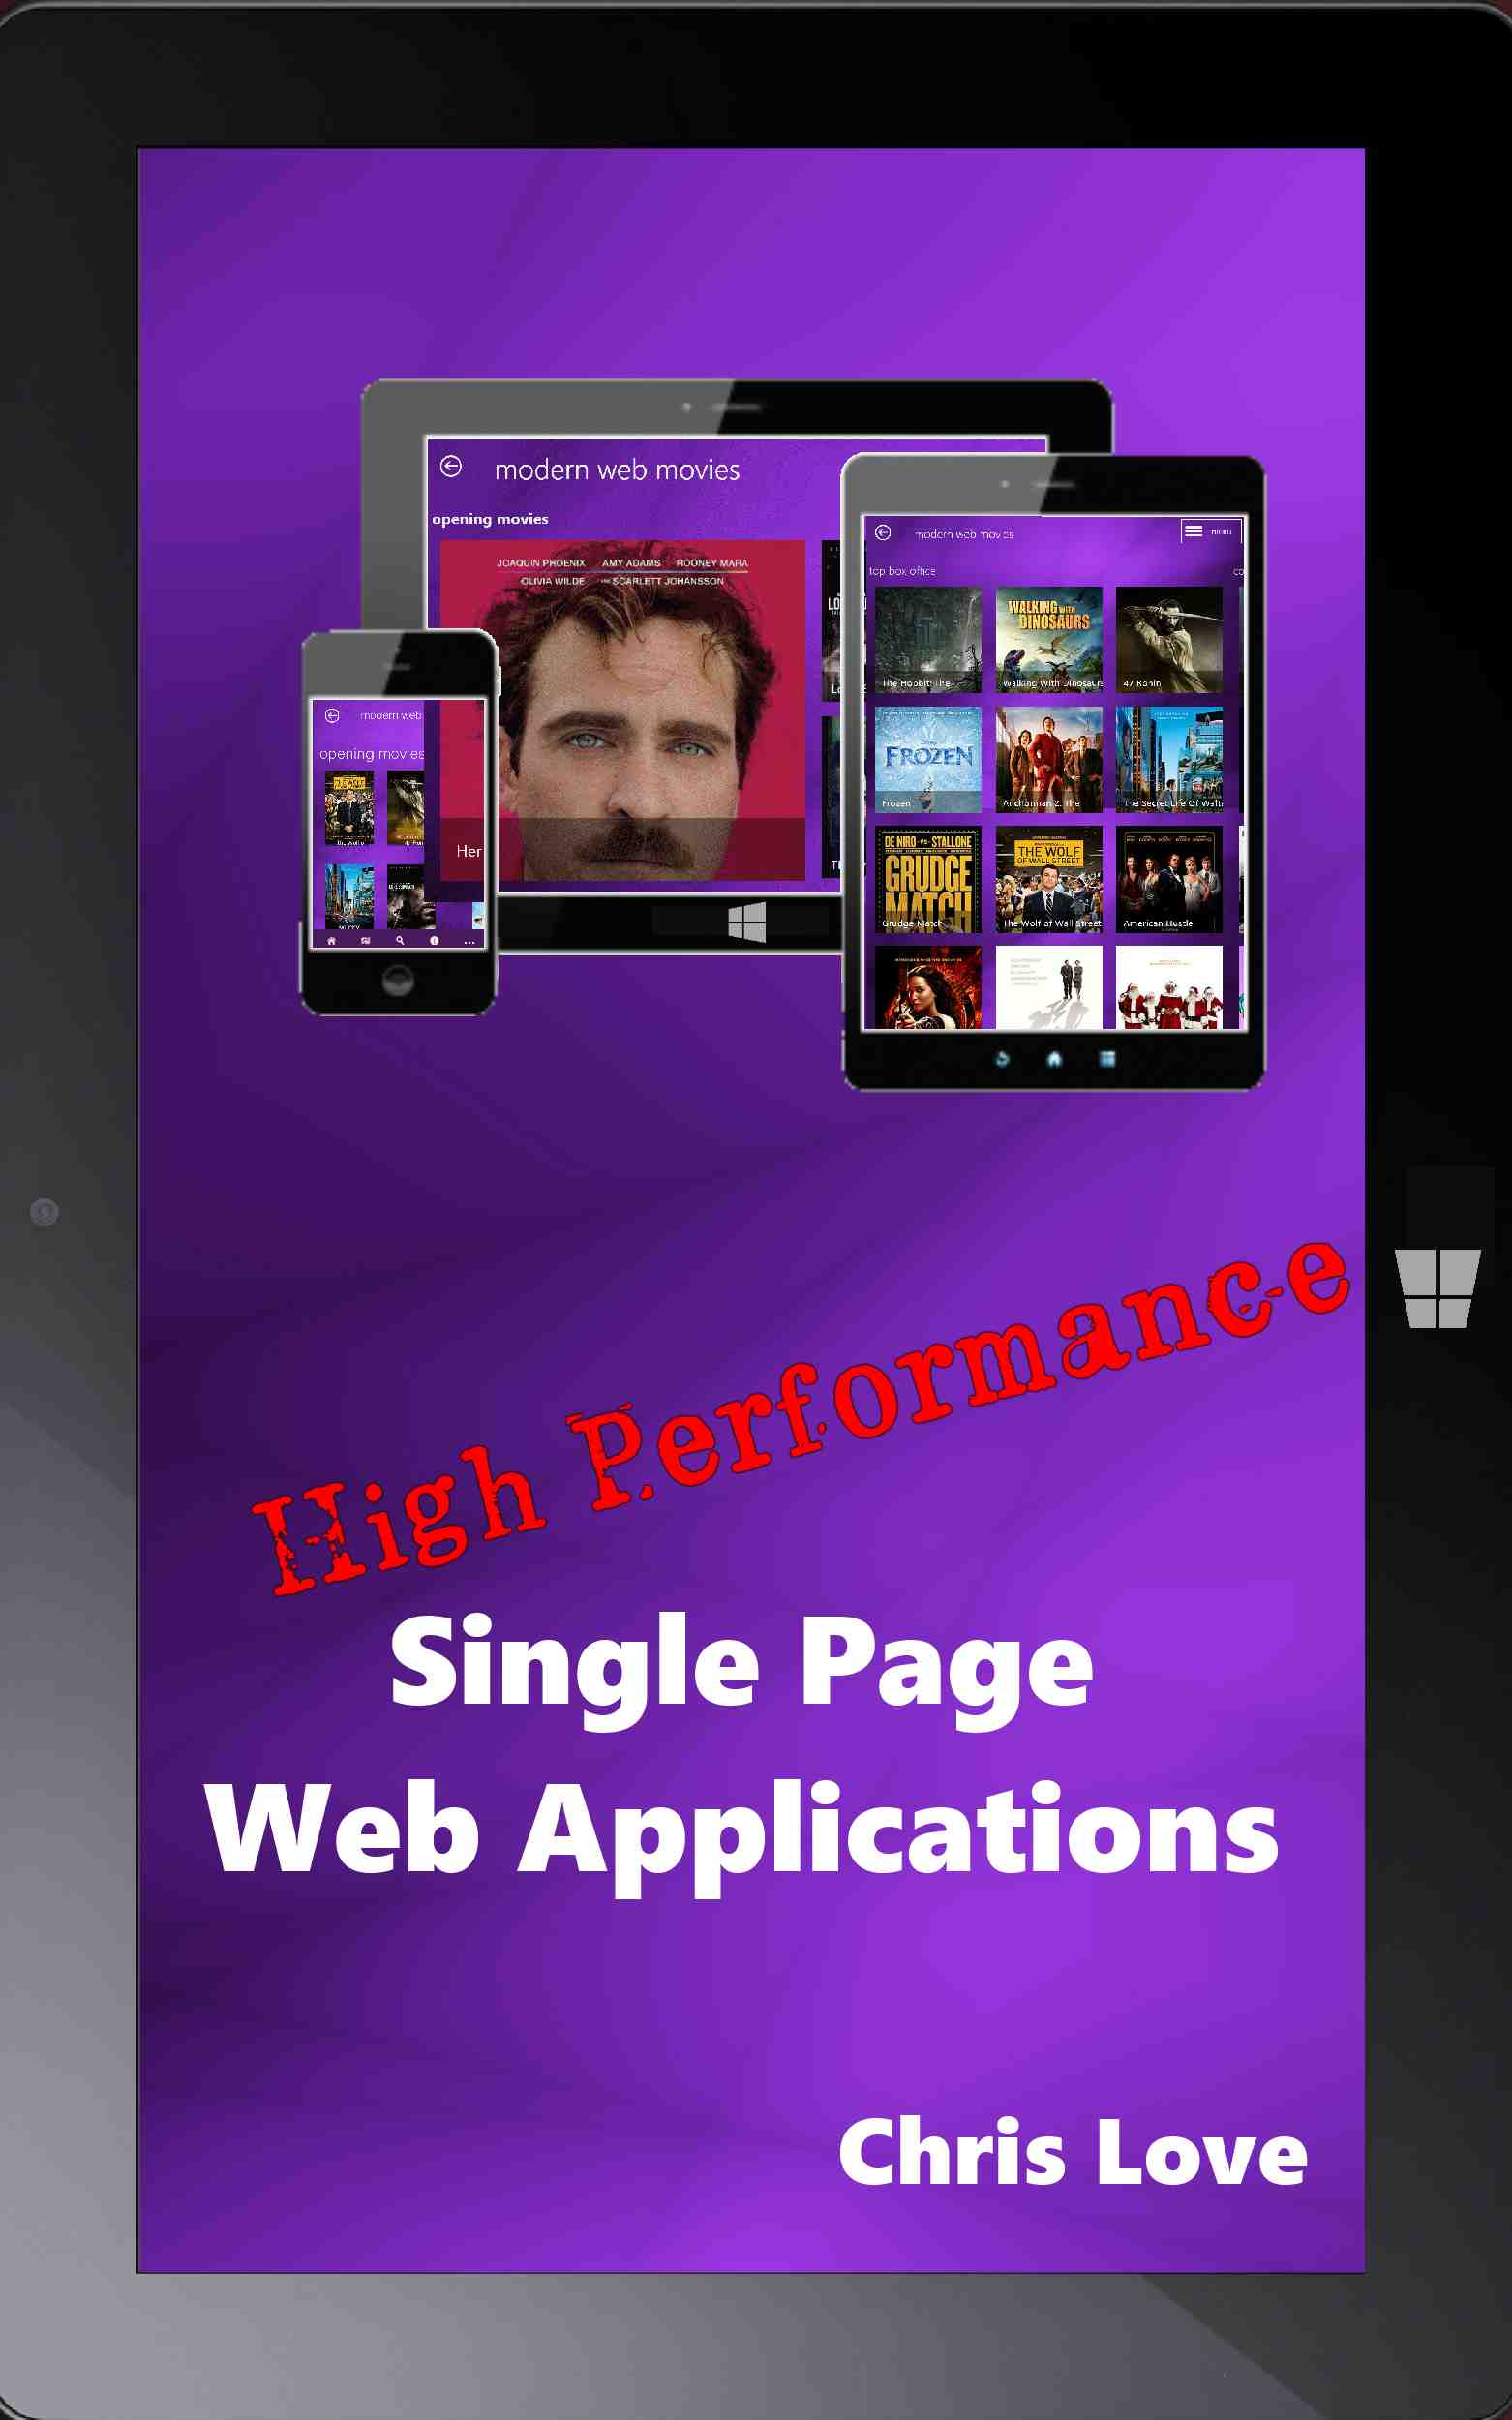 High Performance Single Page Web Applications